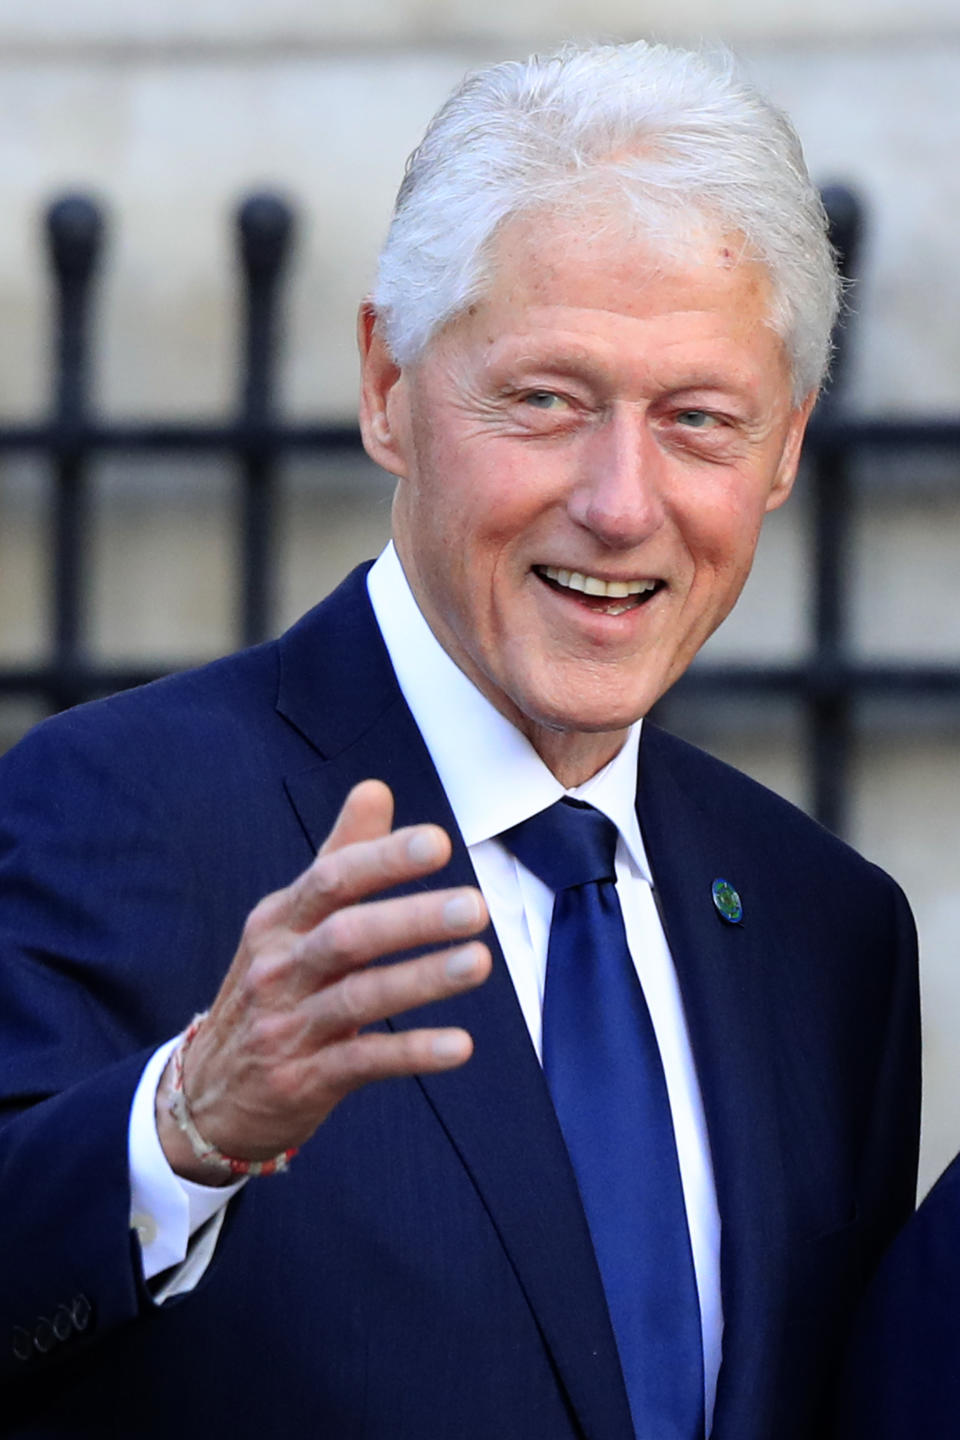 Former U.S. President Bill Clinton arrives at Saint Sulpice church in Paris, Monday, Sept. 30, 2019. (AP Photo/Michel Euler)